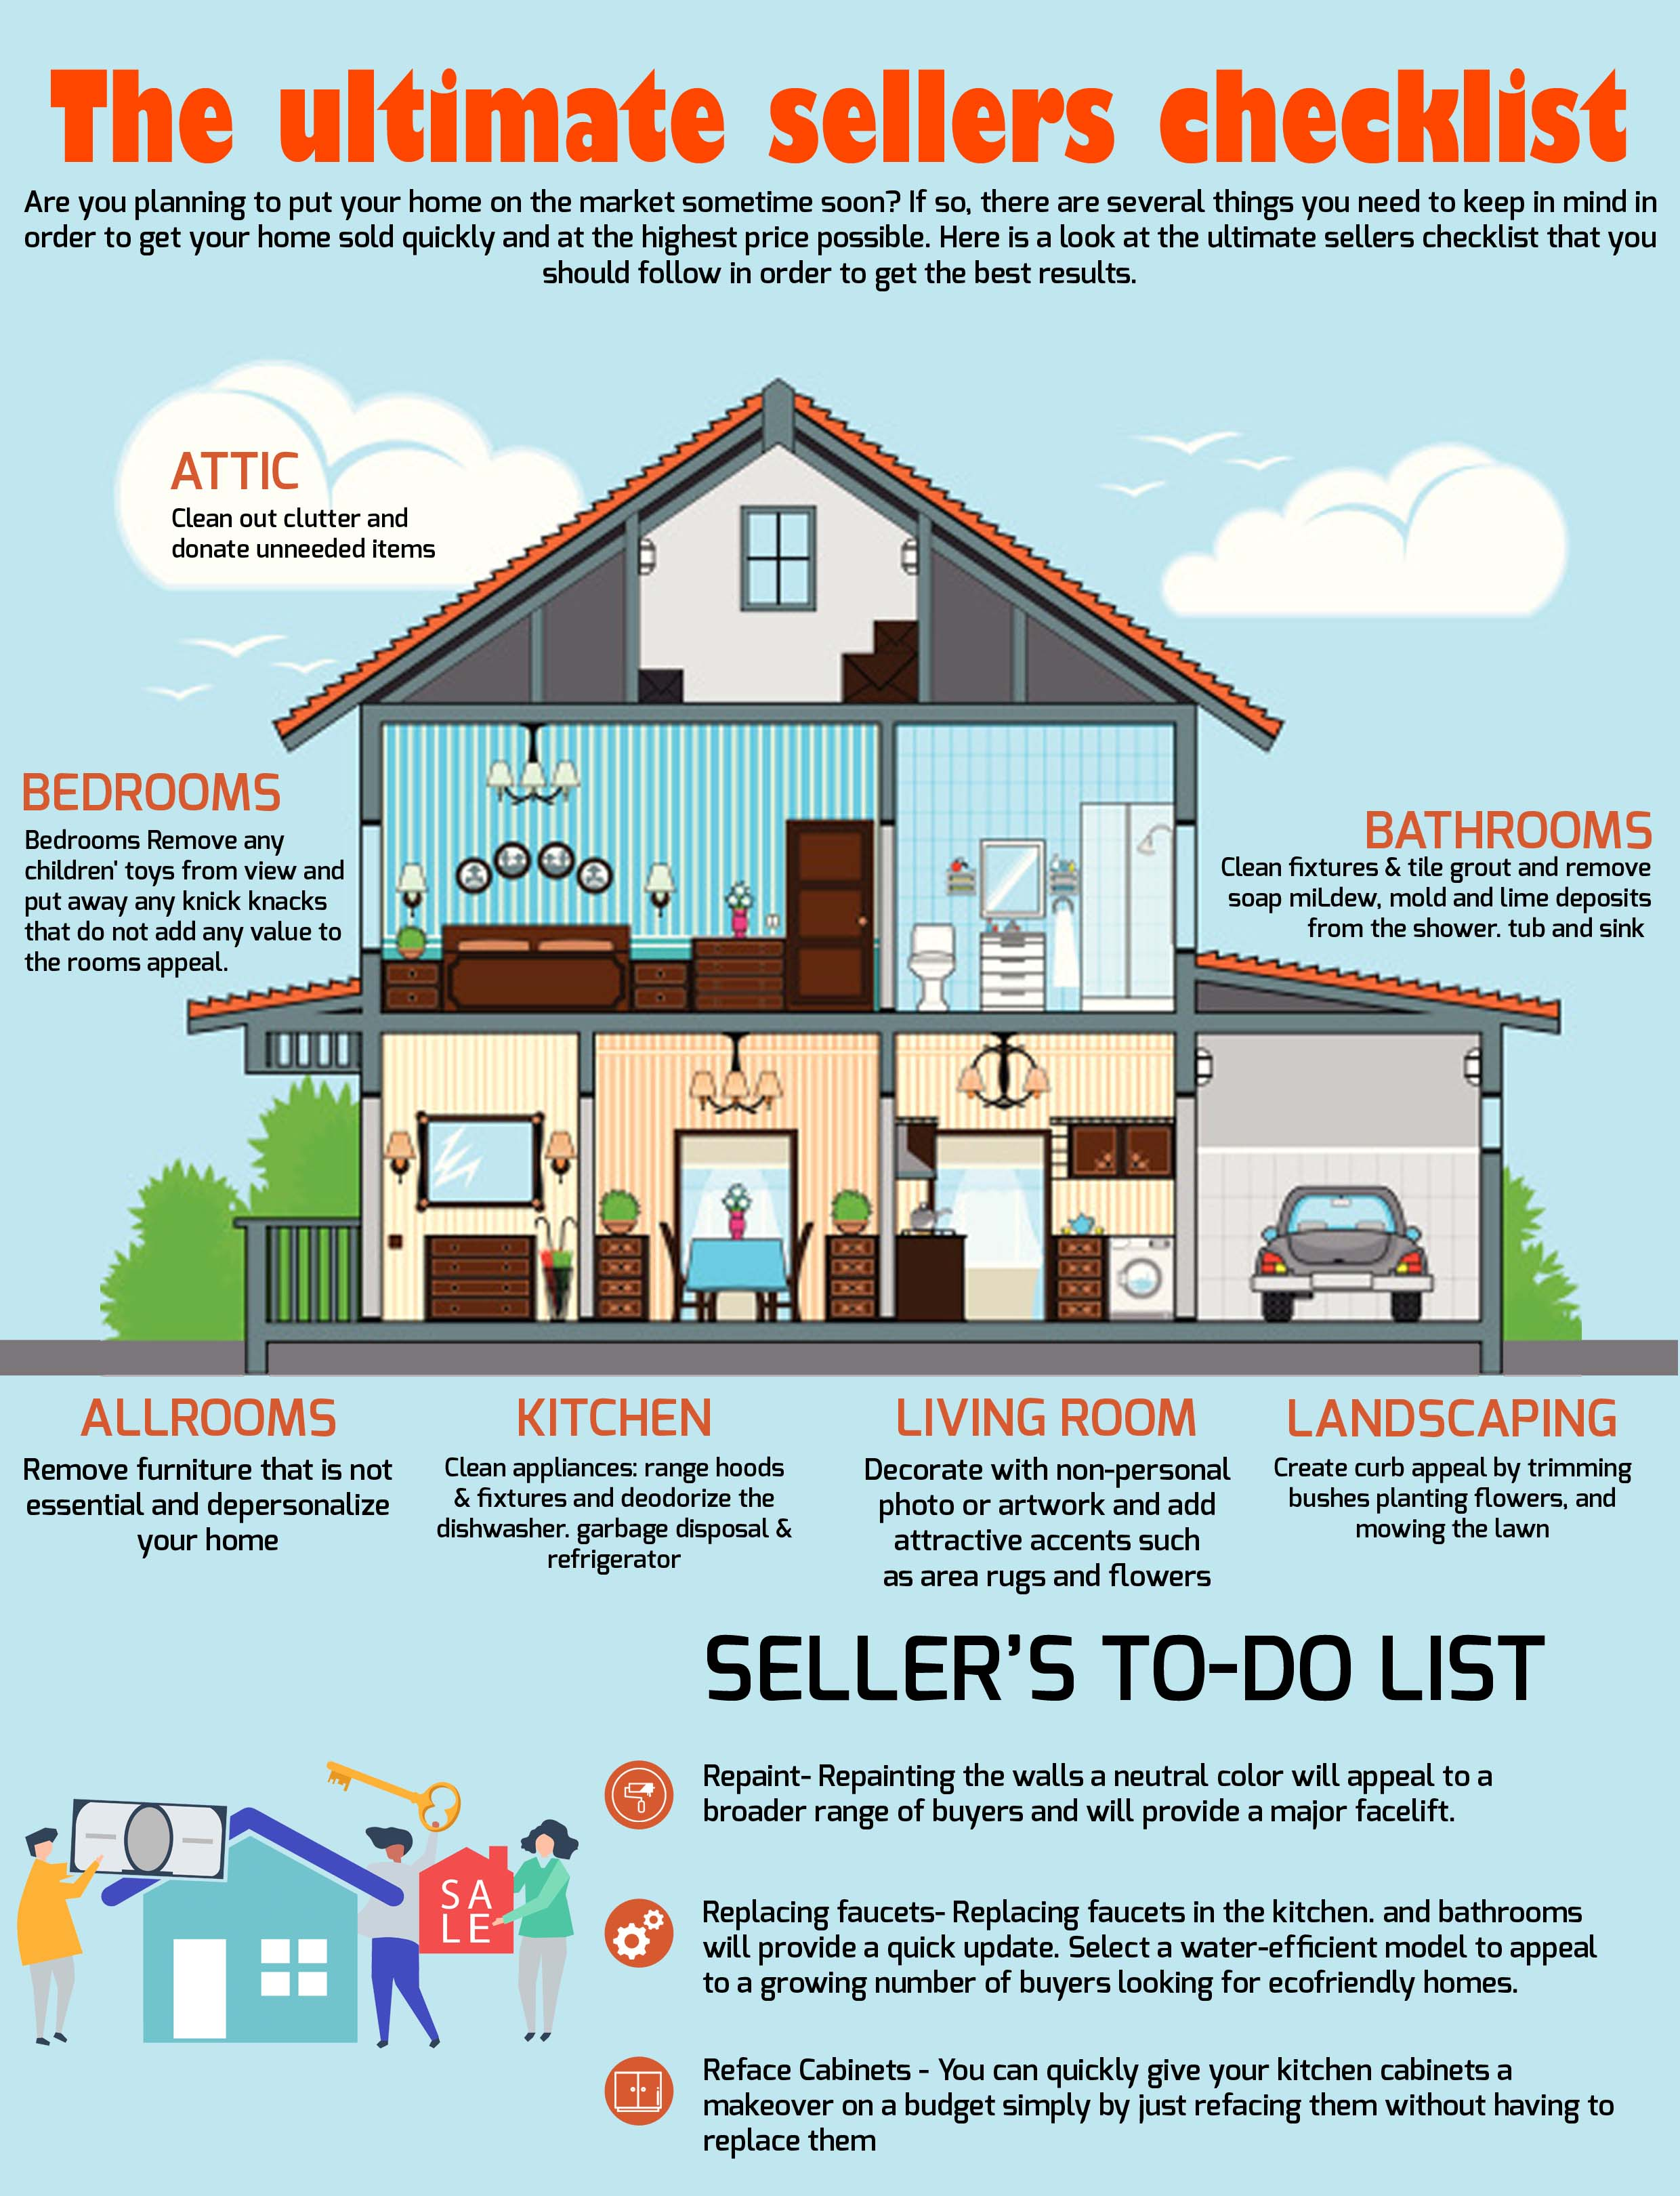 The Ultimate Seller's Checklist